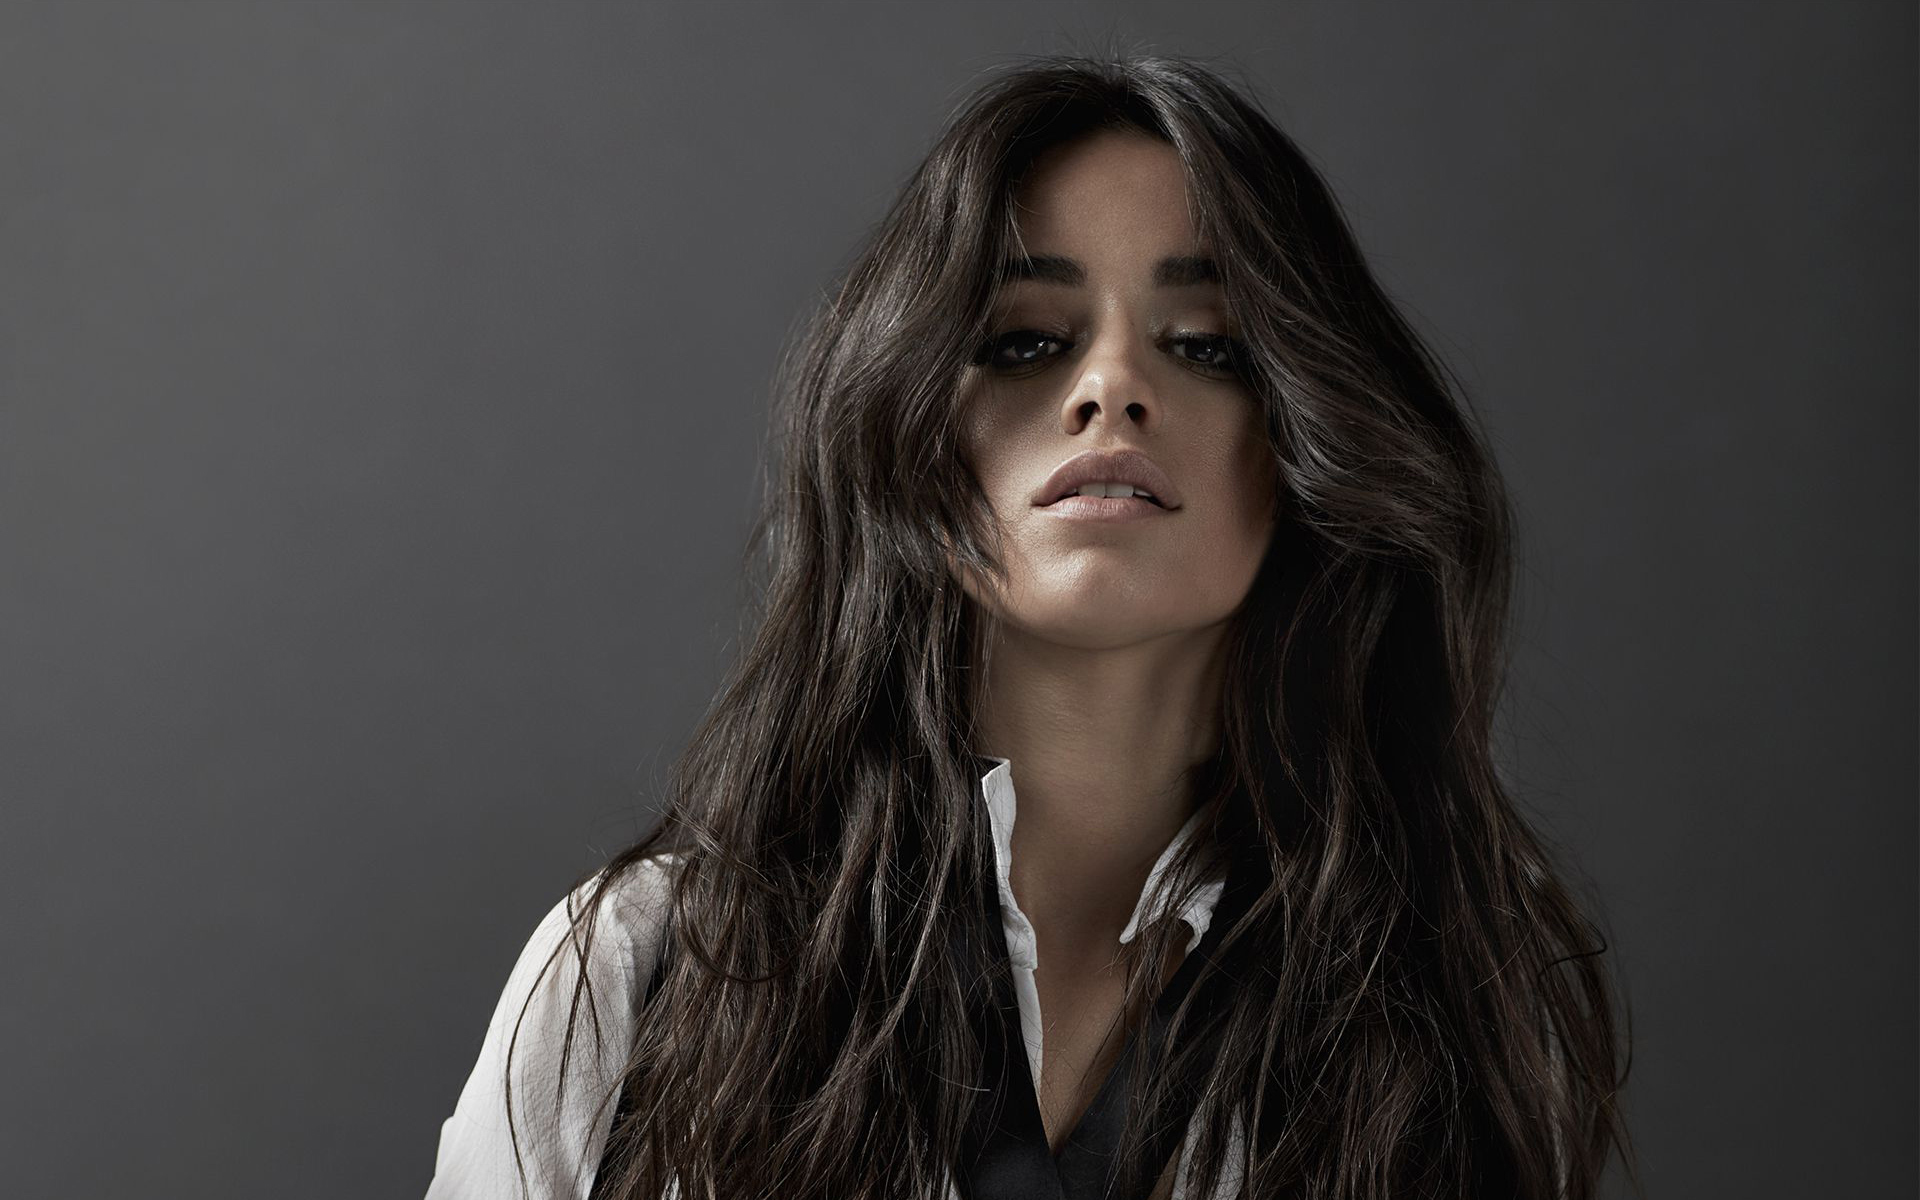 camila cabello wallpaper 64580